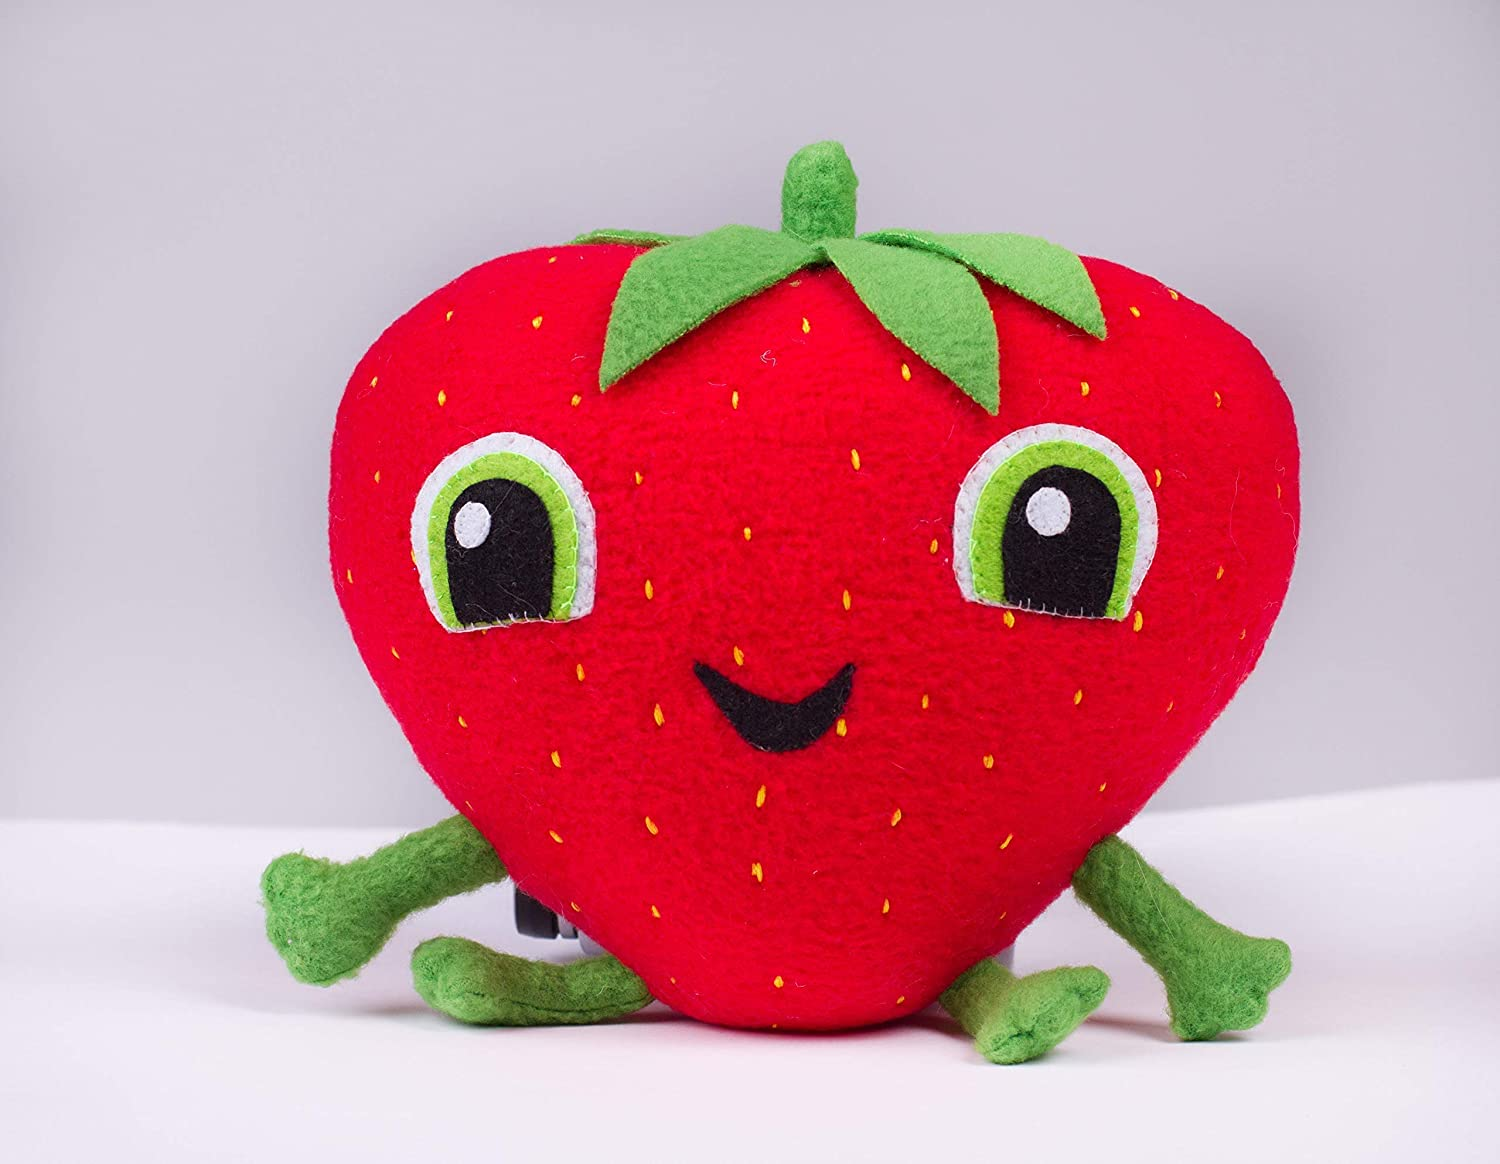 inspired by Cloudy with a Chance of Meatballs Barry the Strawberry plush handmade plush toy